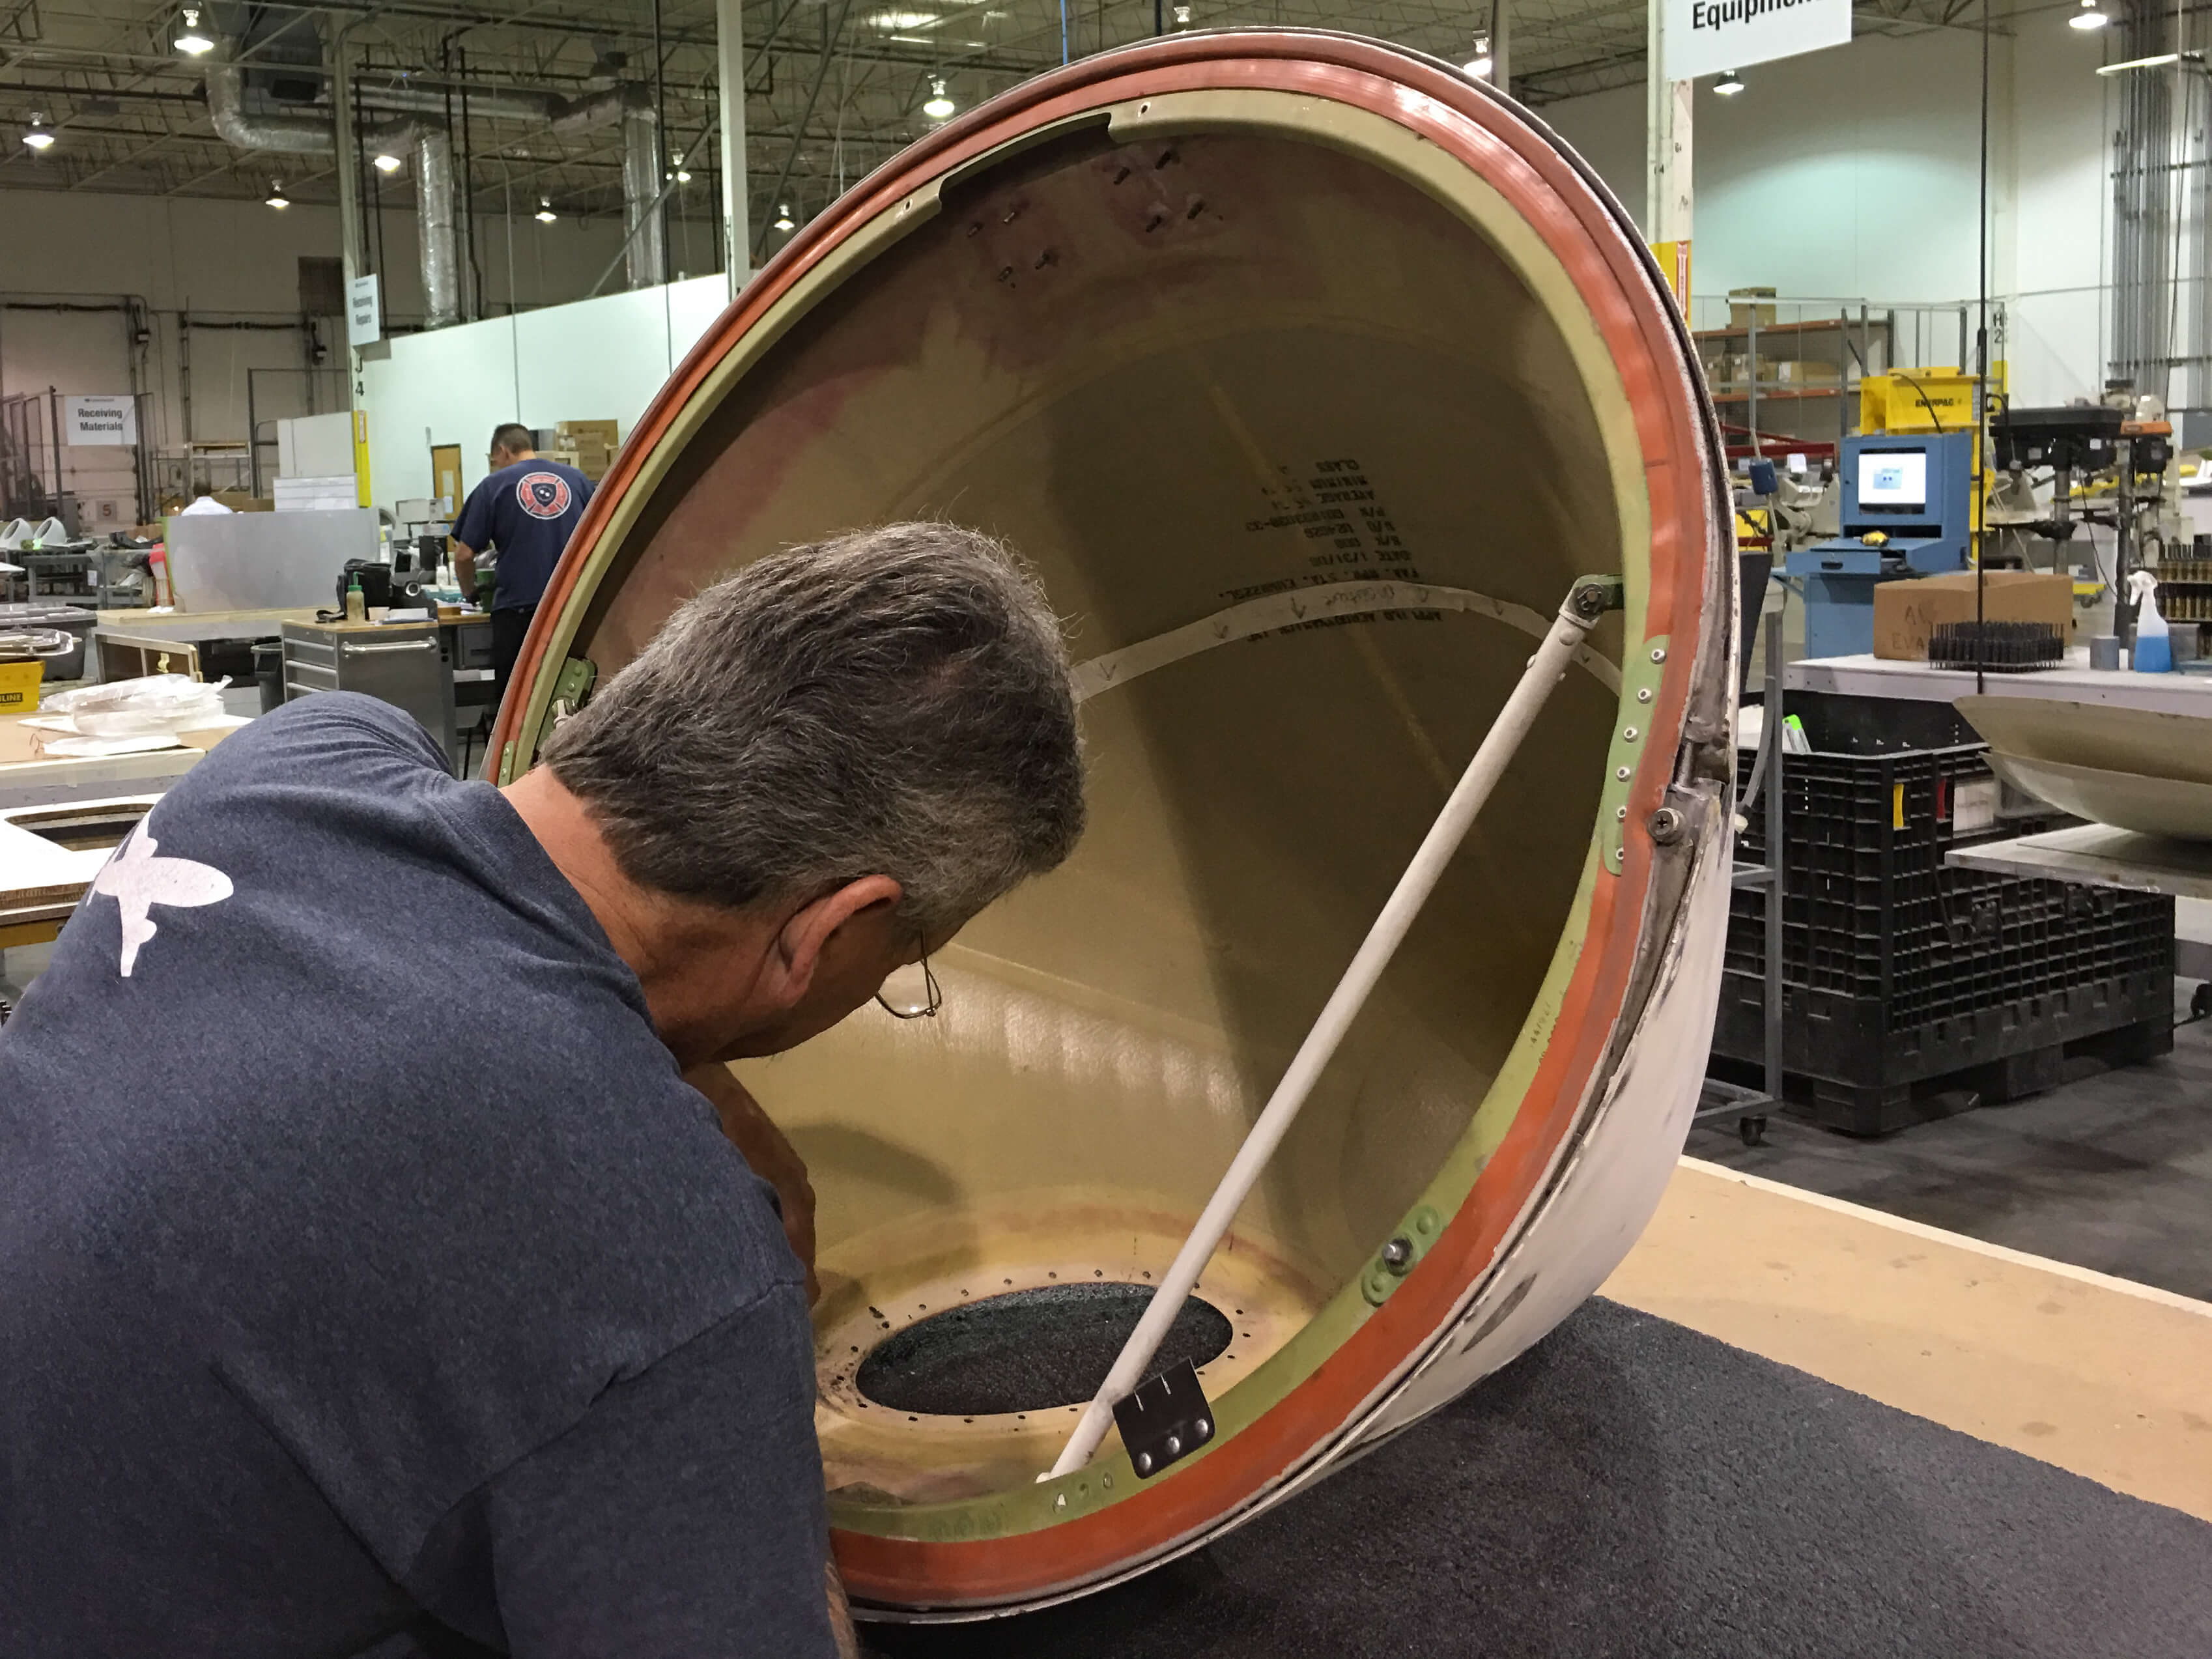 Cleaning the inside of a CJR 100/200 Radome before installing lens